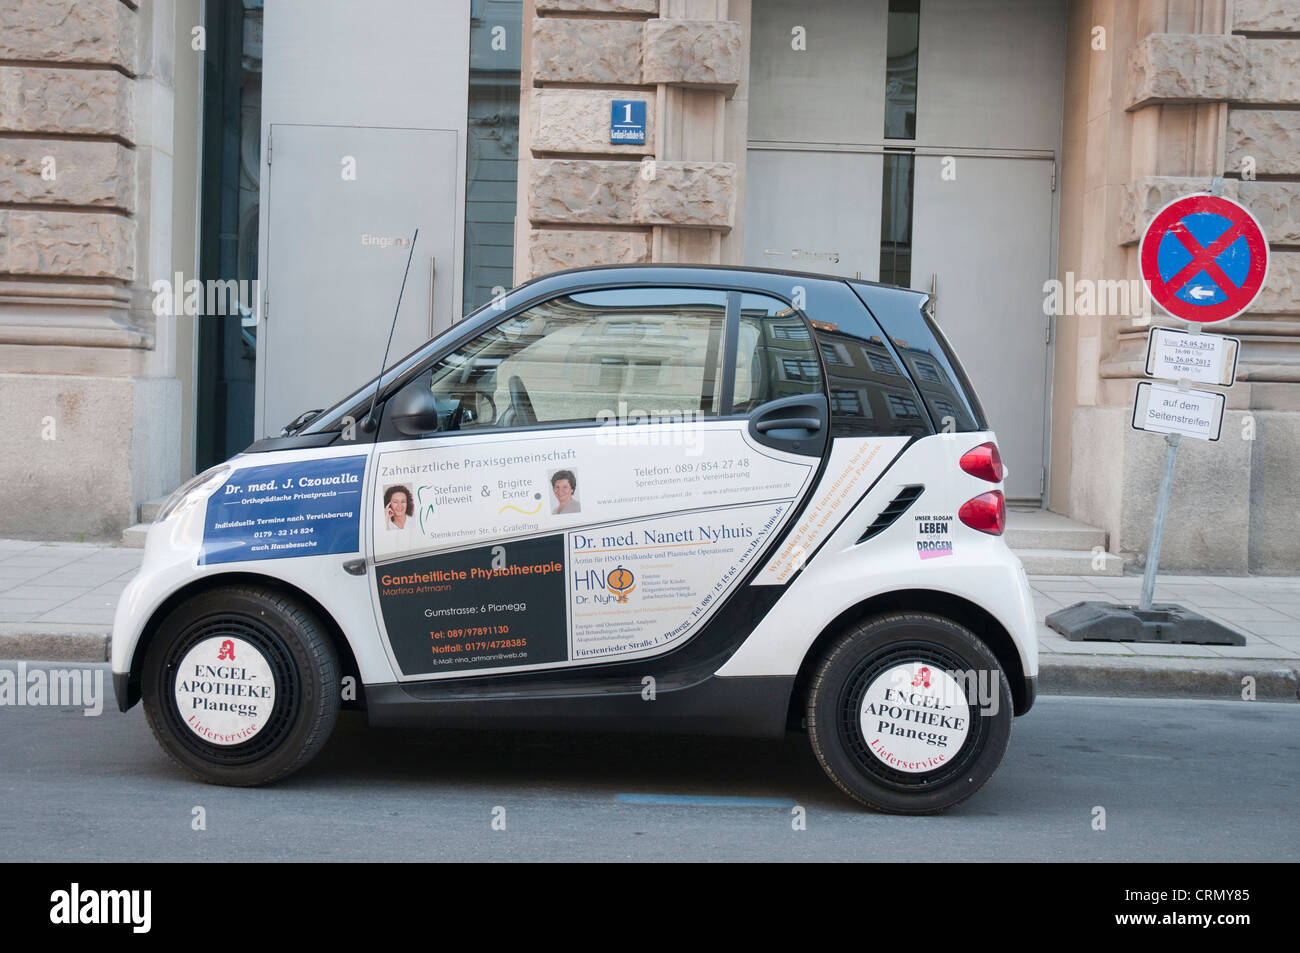 Small car parked in Munich, covered with advertising for doctors and medical products - Stock Image